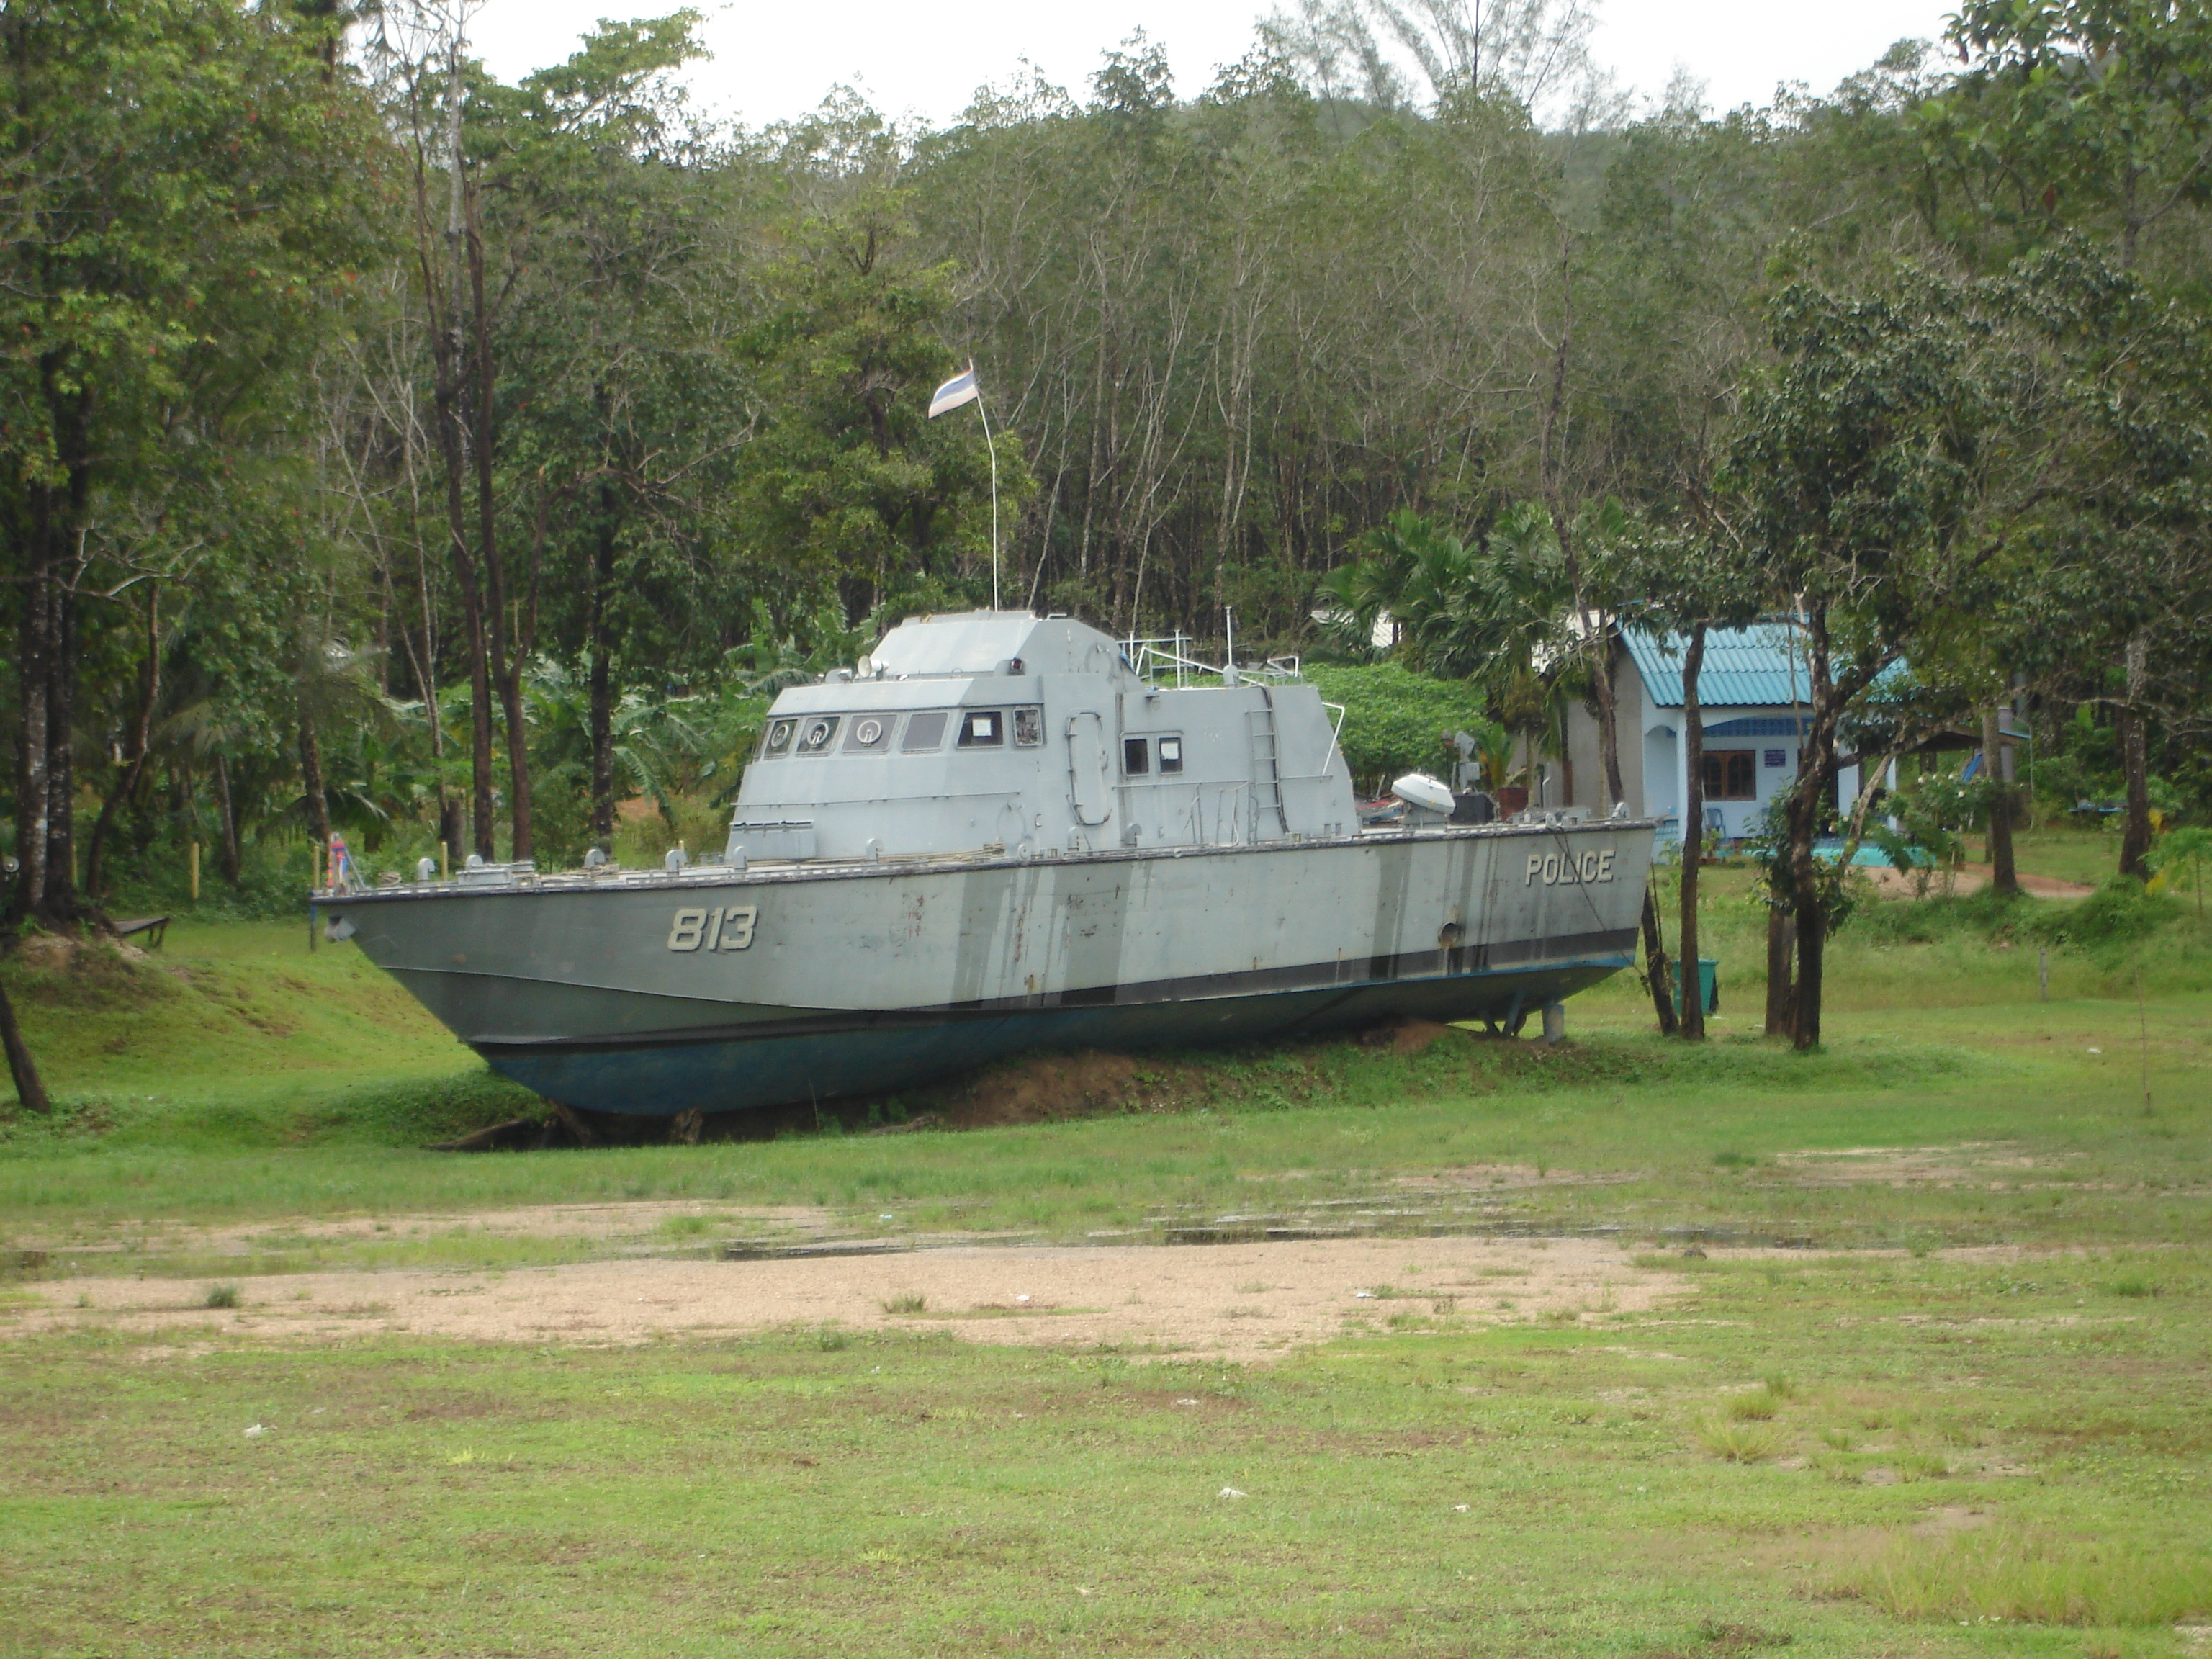 Thai Royal Navy patrol boat 813 was stranded almost 2 km inland at Bang Niang, Khao Lak in Phang Nga Province, Thailand, by the 2004 Boxing Day tsunami. Photo by Mark Jochim on September 30, 2006.